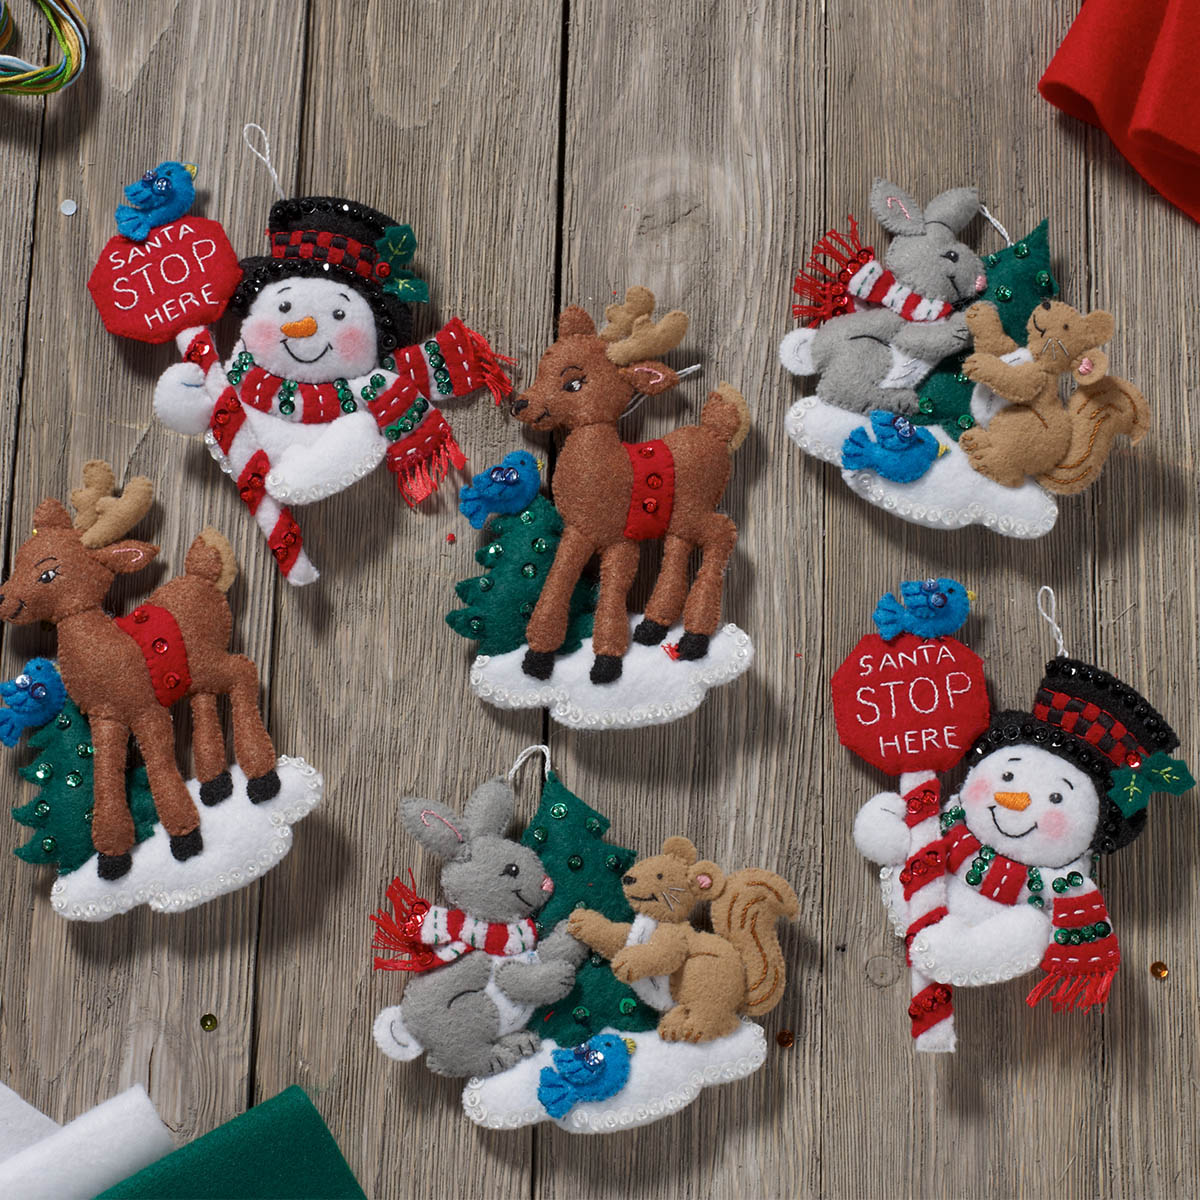 Bucilla ® Seasonal - Felt - Ornament Kits - Santa Stop Here